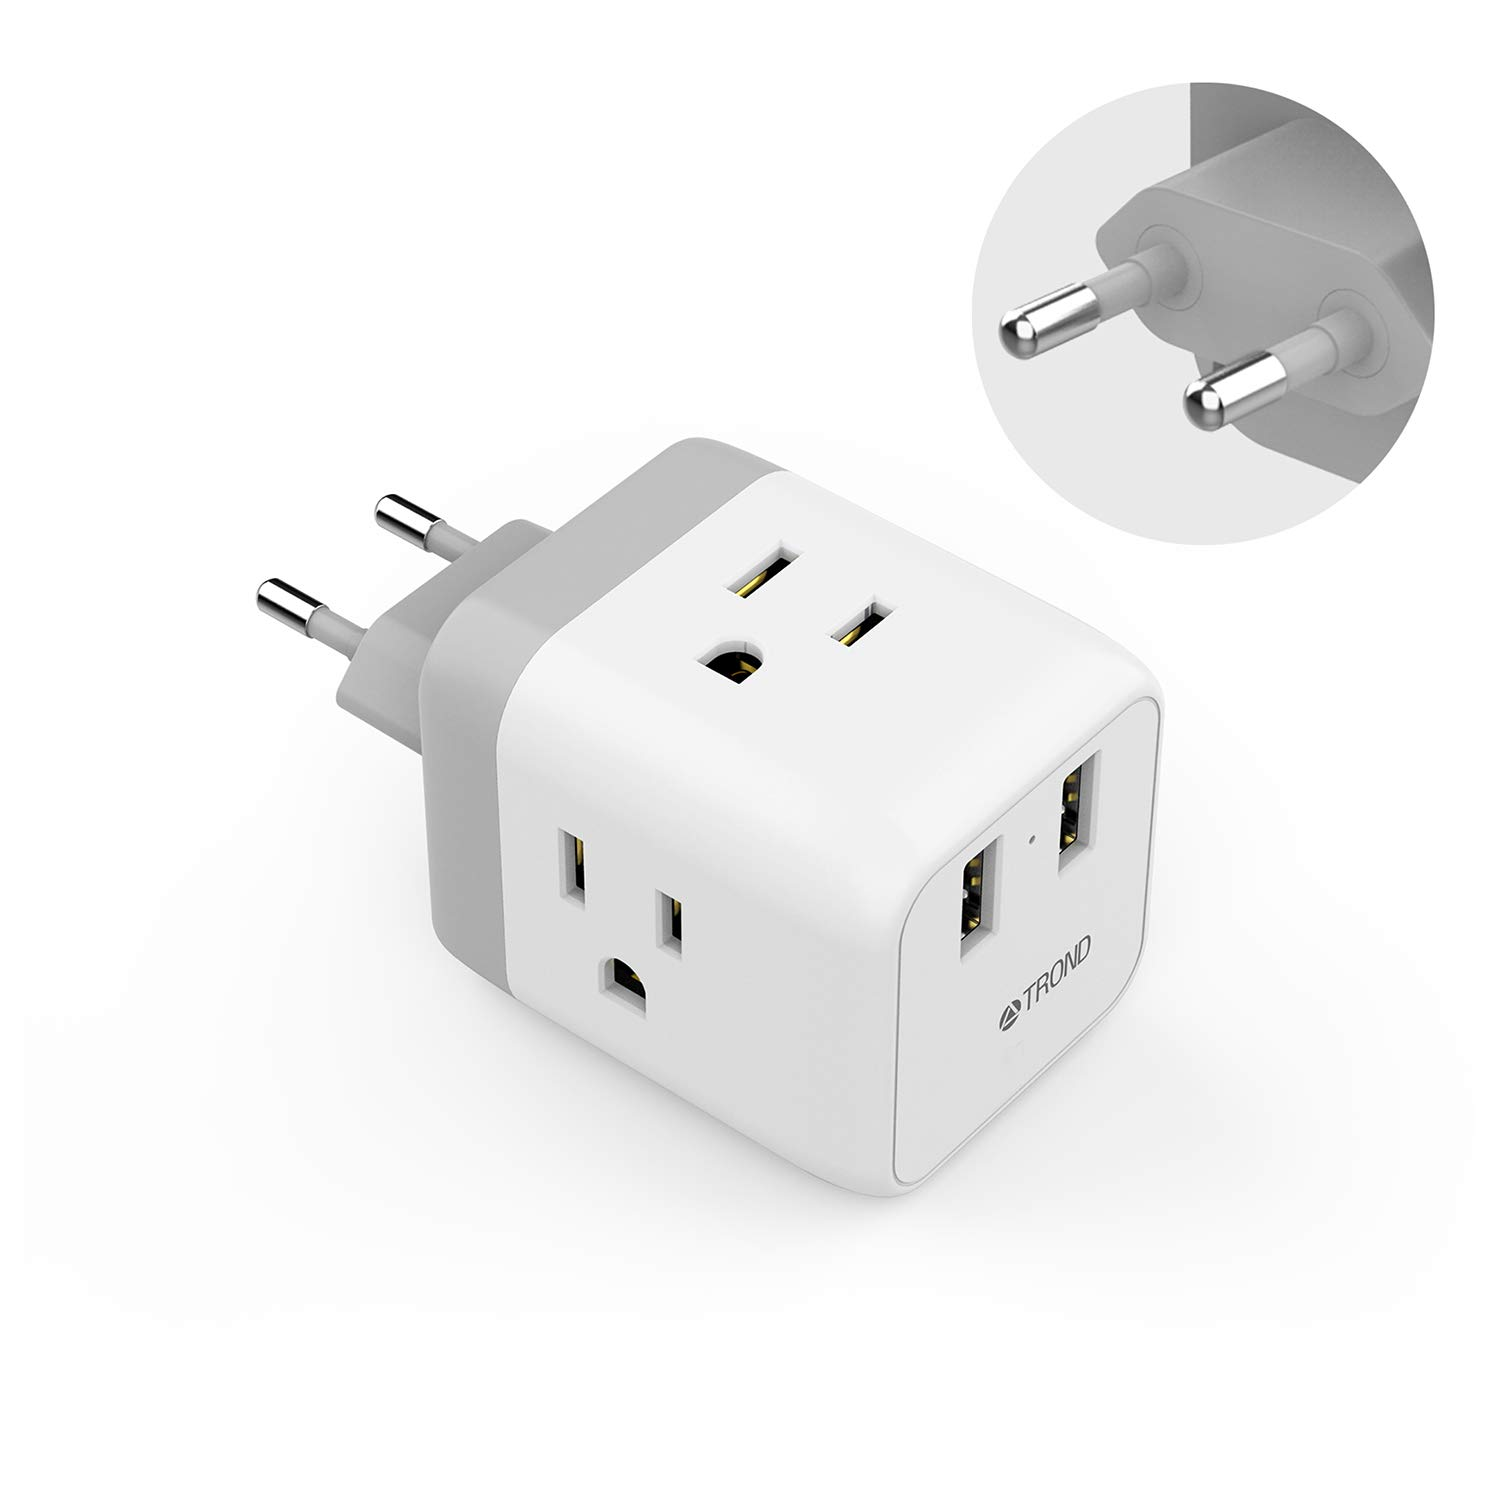 European Travel Plug Adapter, TROND 5 in 1 US to EU Power Adapter with 2 USB Ports and 3 American Outlets, for Germany France Italy Spain Greece Israel (Type C Plug), White